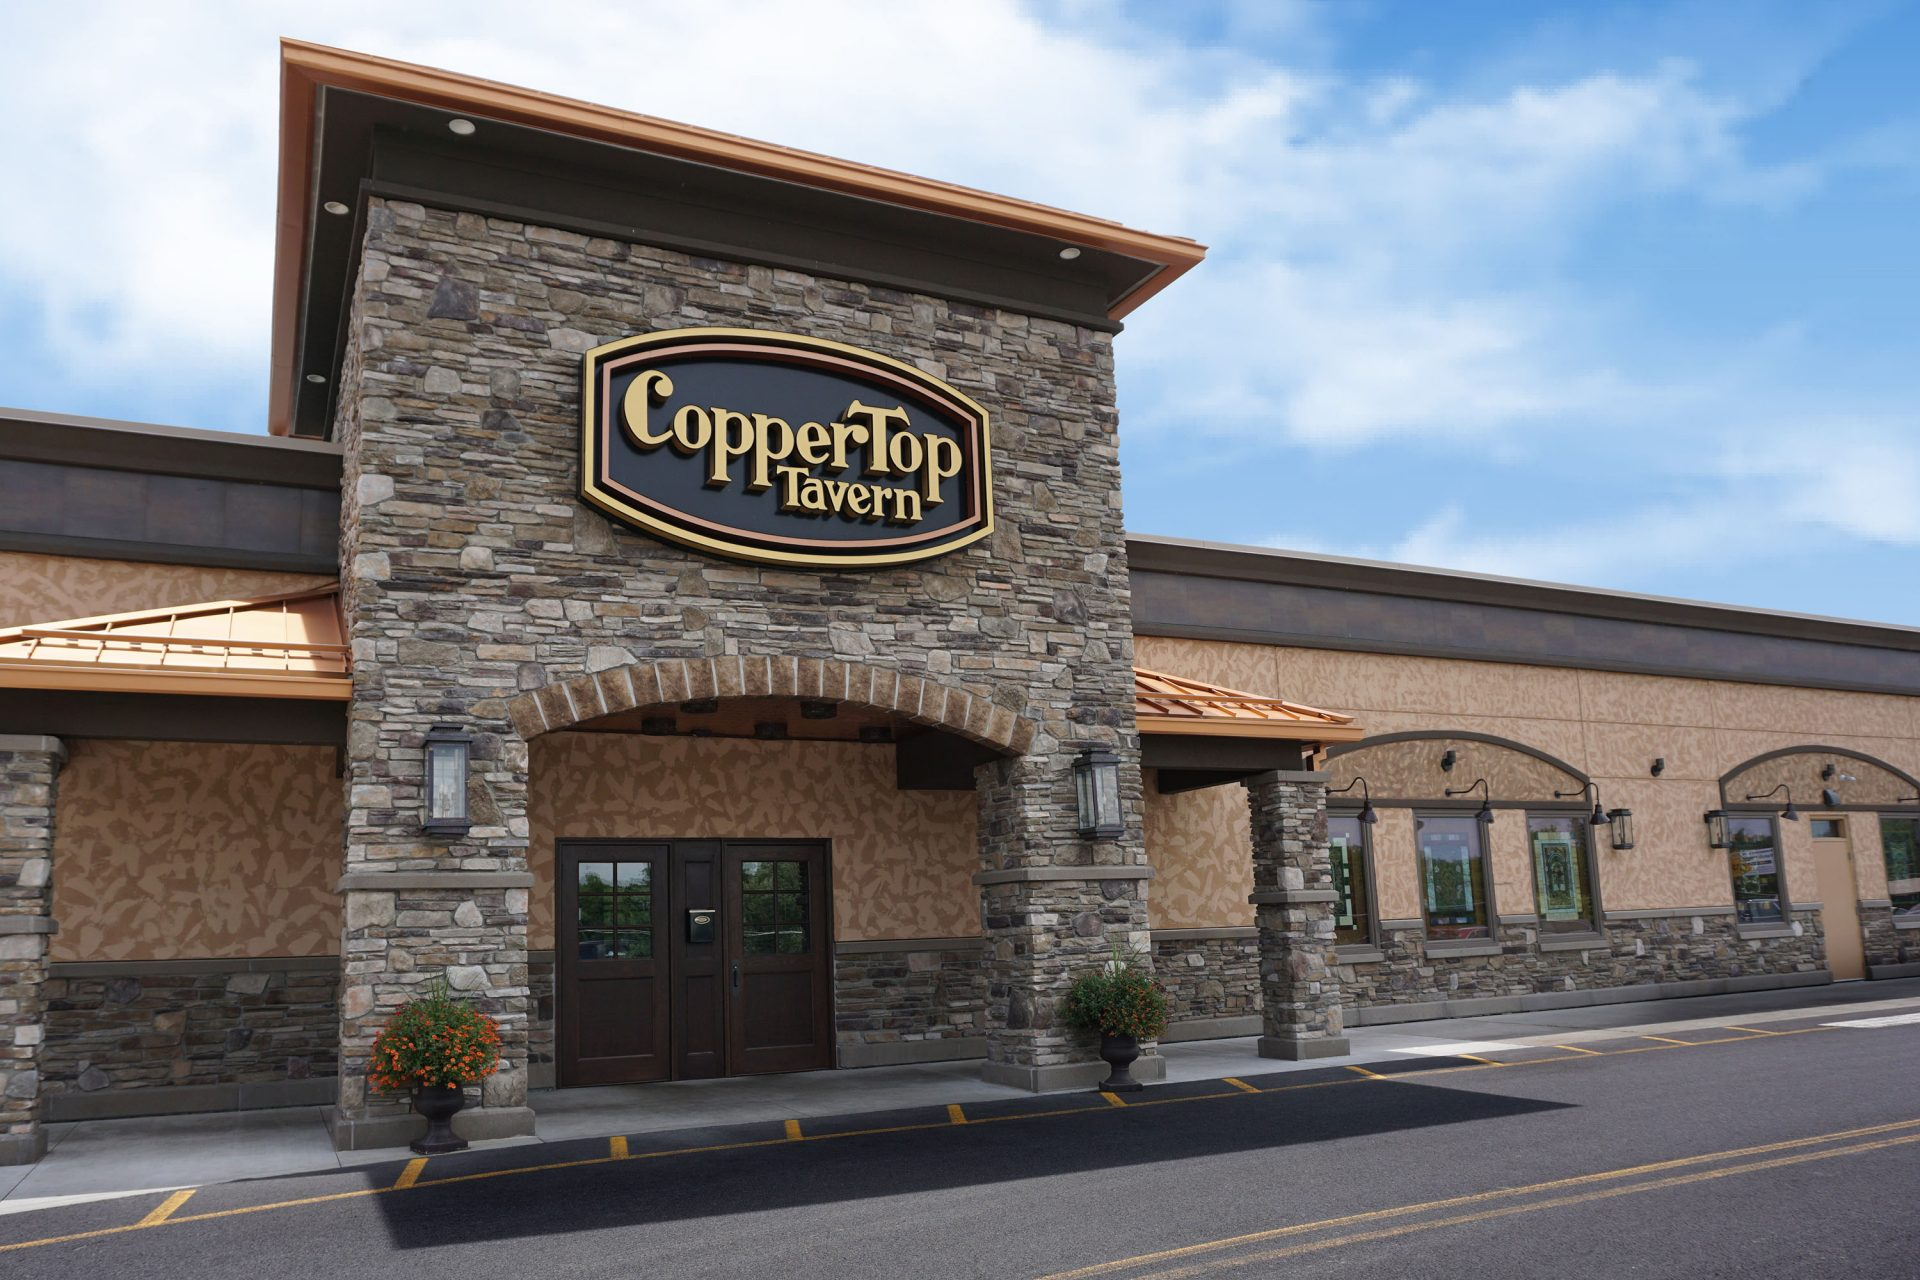 CopperTop Tavern in Vestal, NY